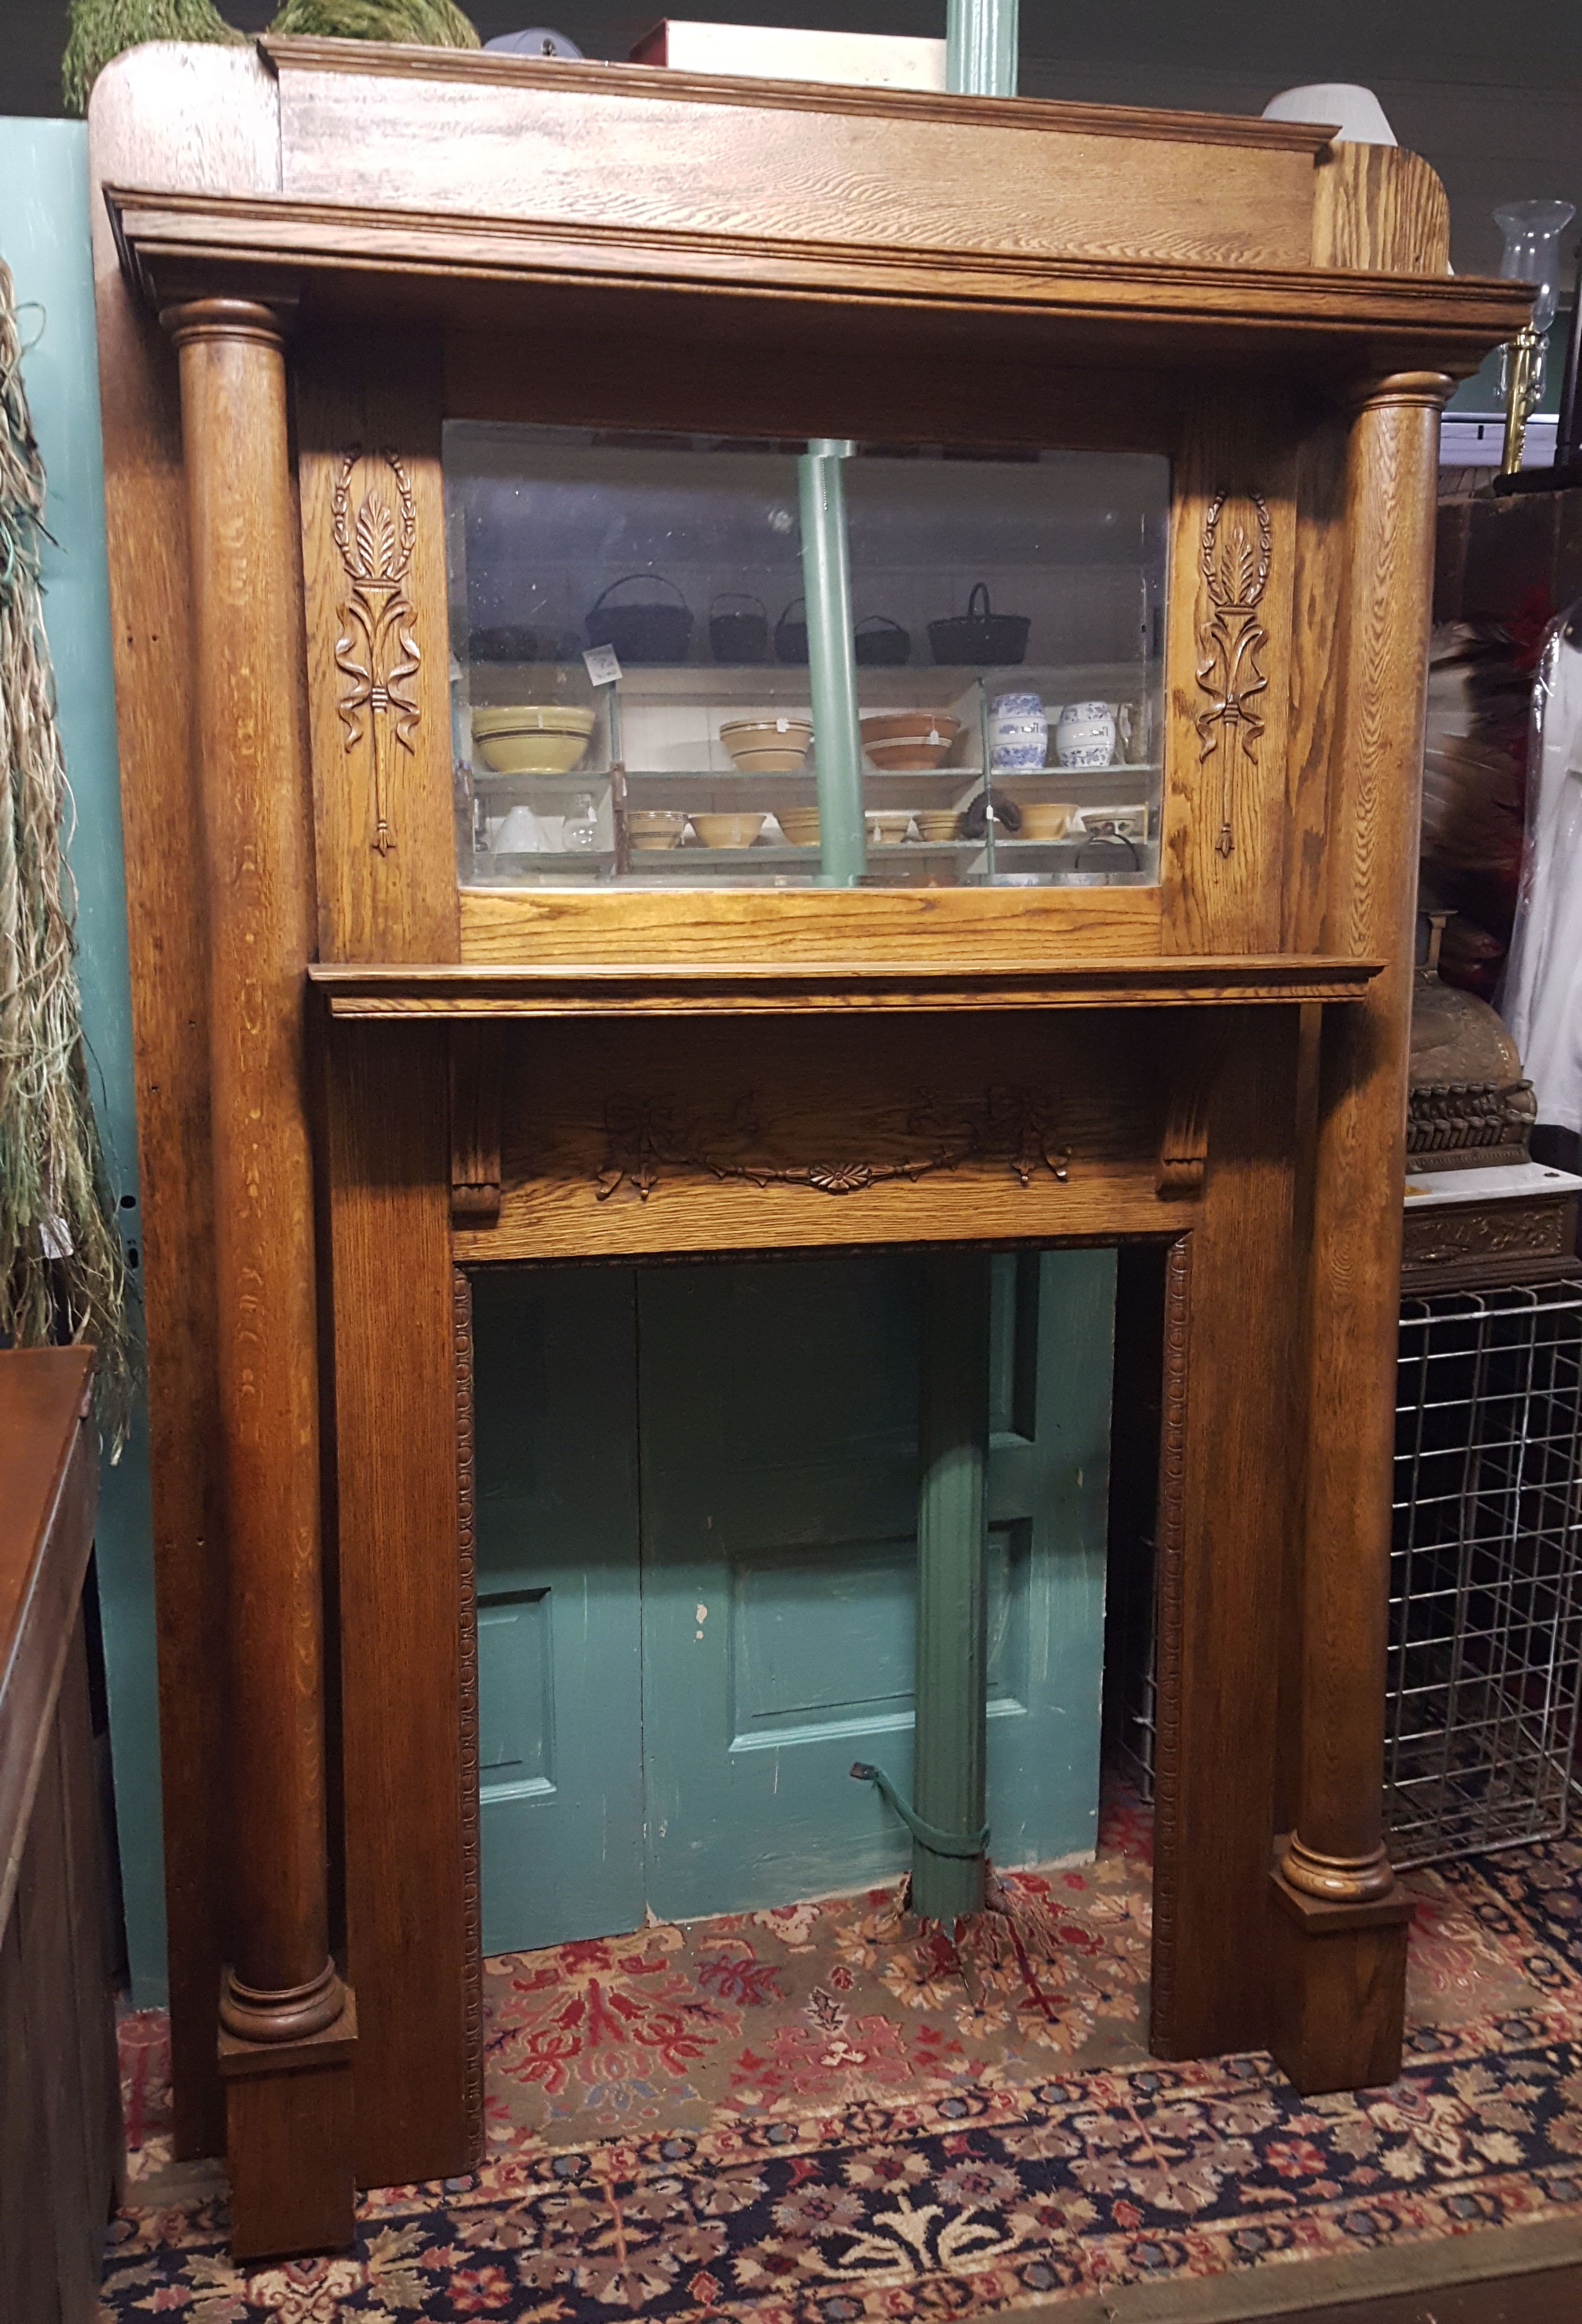 OAK FIREPLACE SURROUND WITH MIRROR